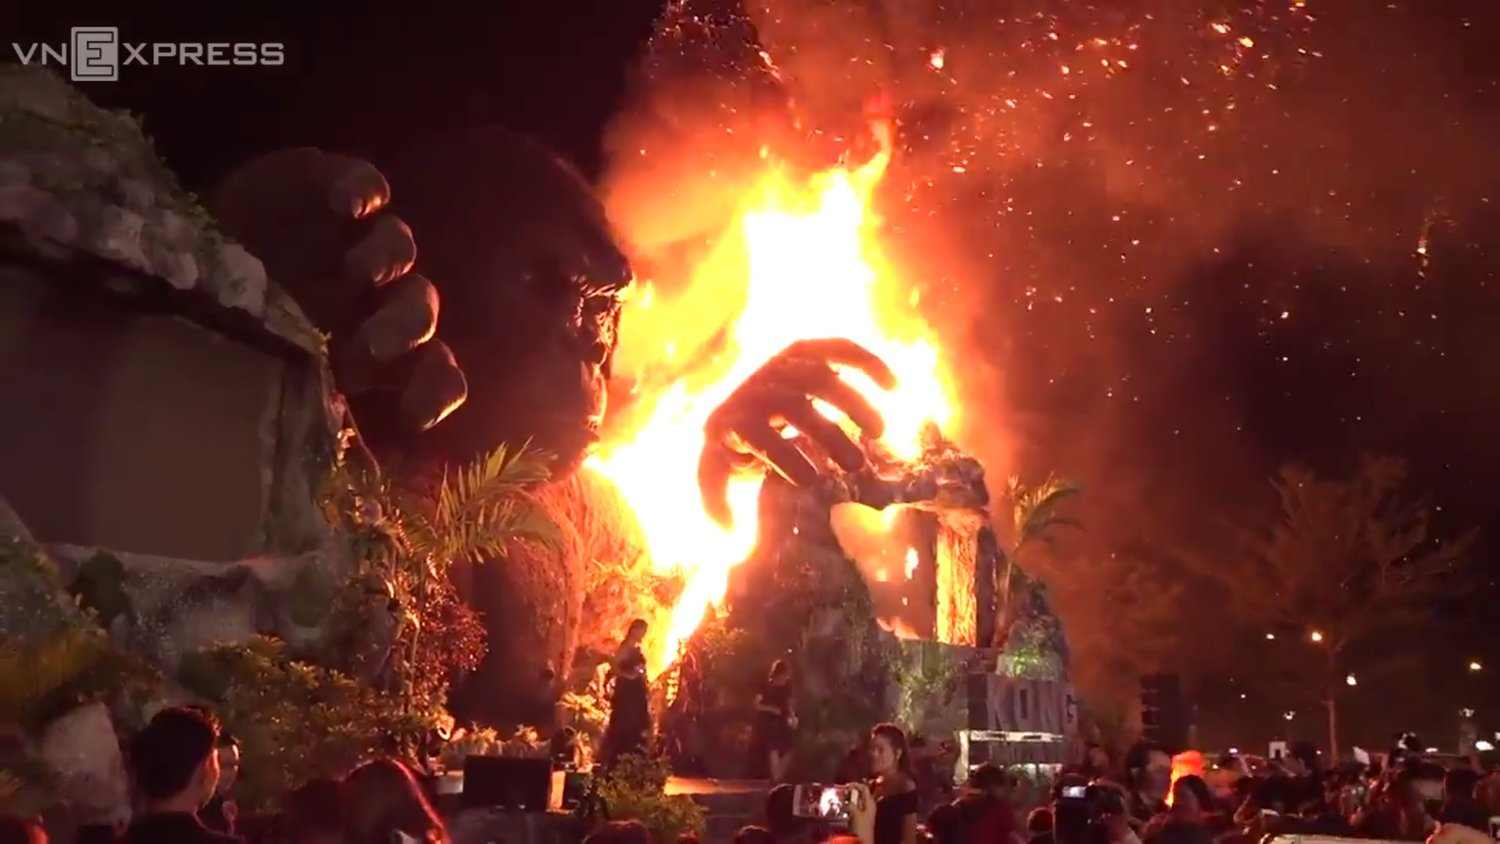 Giant King Kong Catches Fire at Saigon Premiere of KONG: SKULL ISLAND